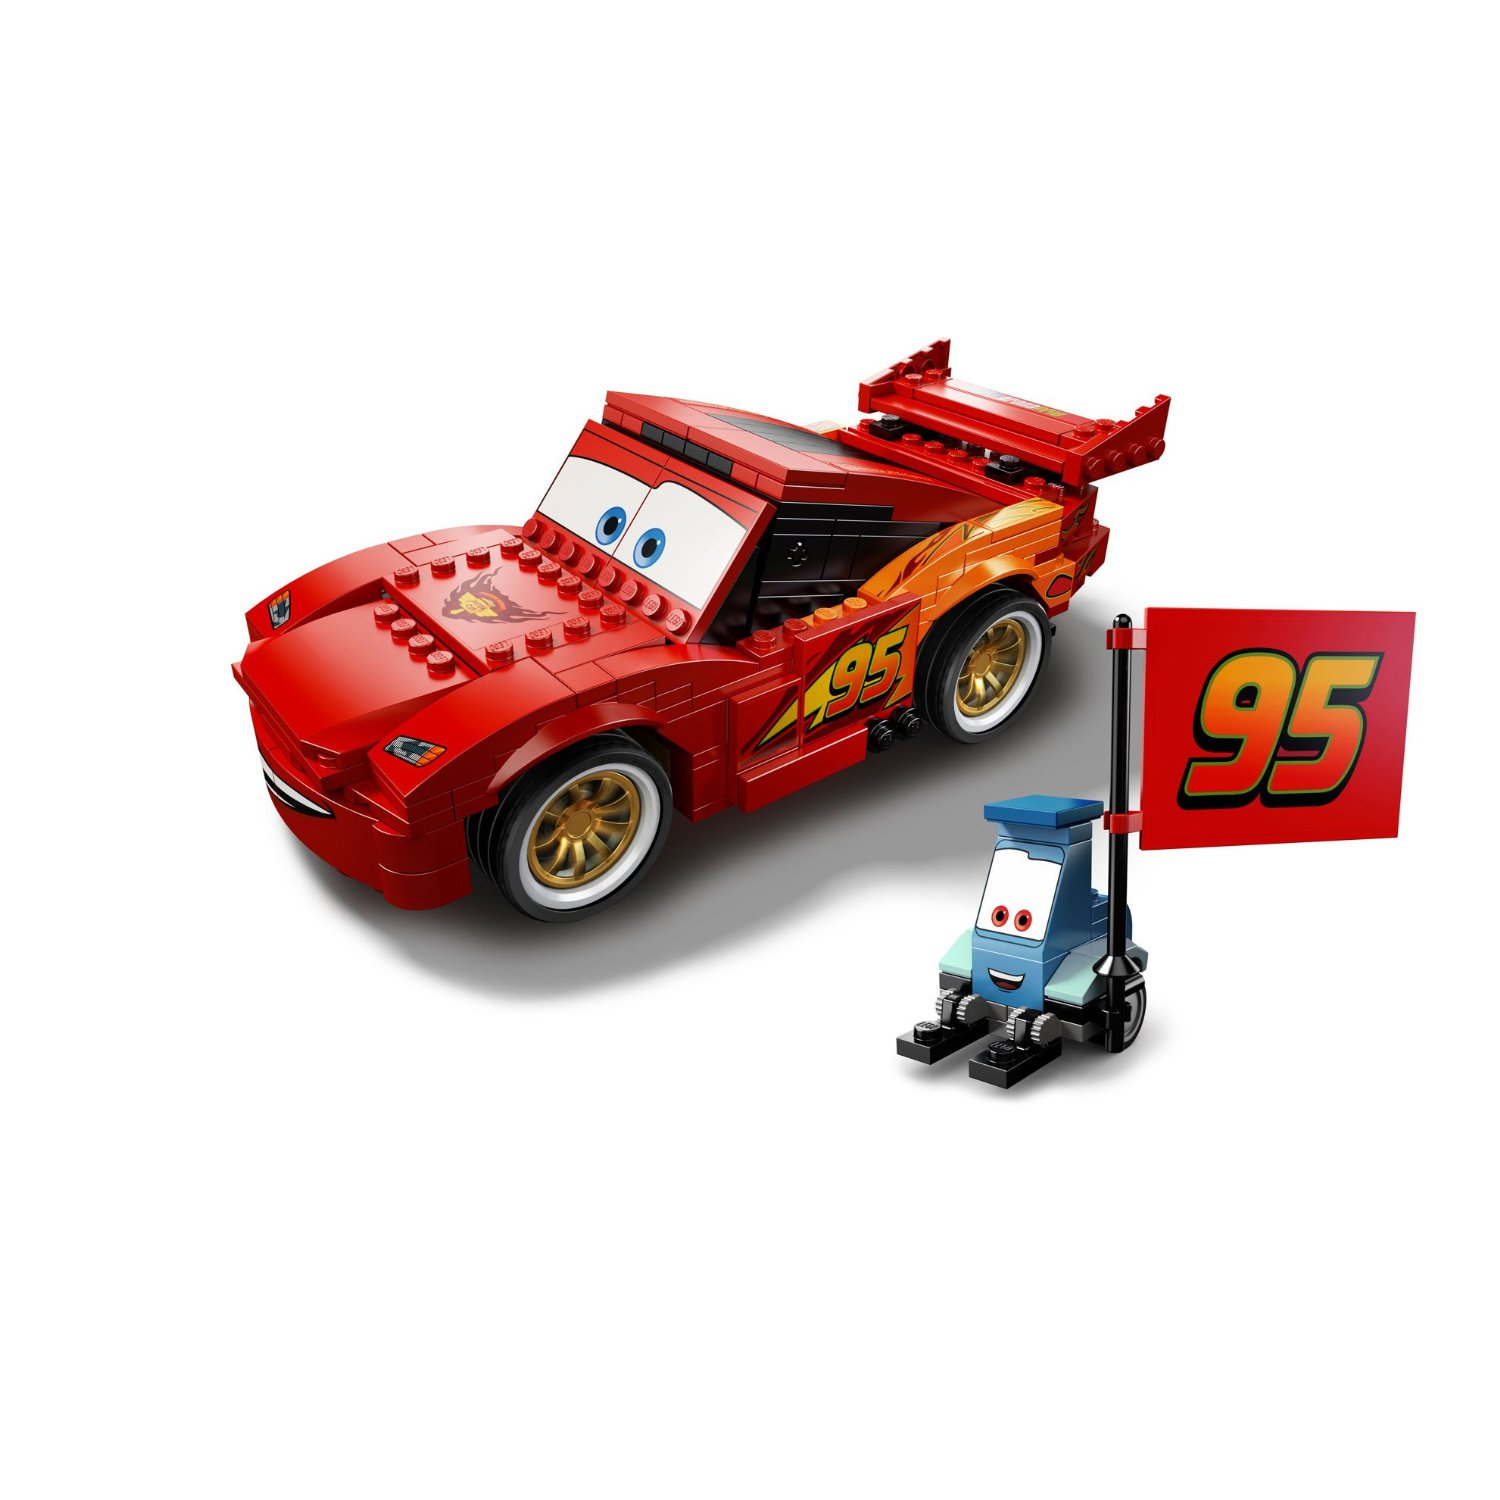 playfactory cars flash mcqueen lego. Black Bedroom Furniture Sets. Home Design Ideas